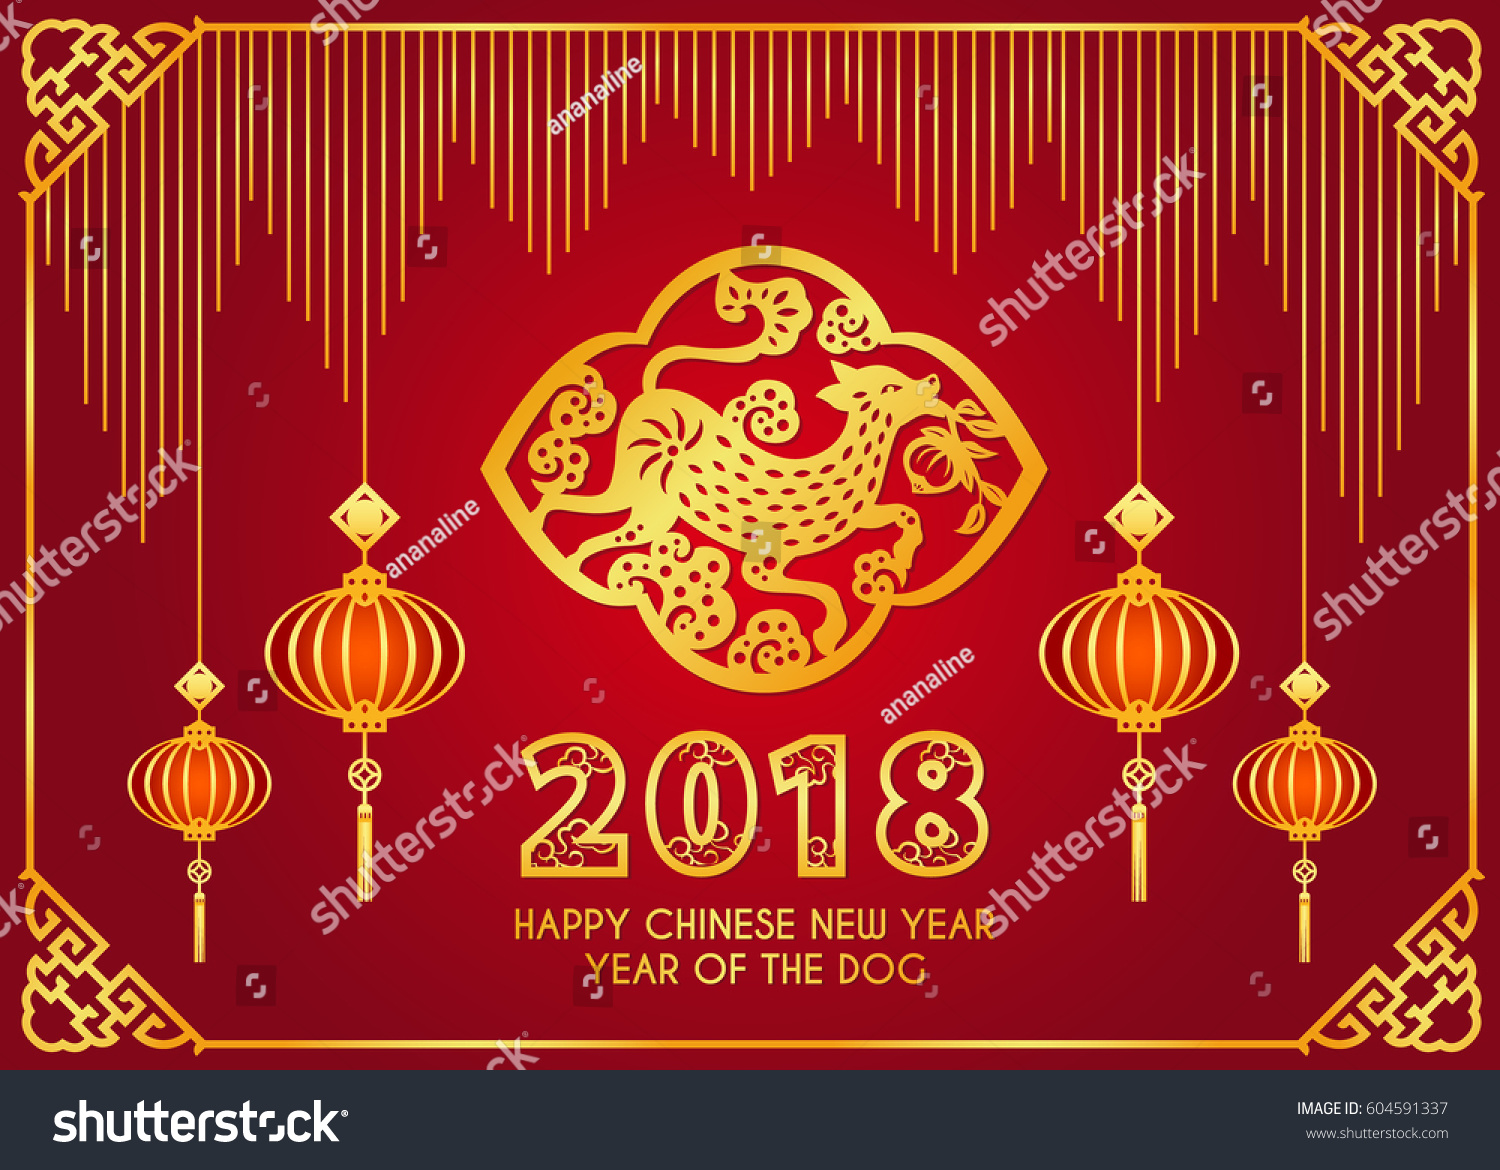 Happy Chinese New Year 2018 Card Stock Vector 604591337